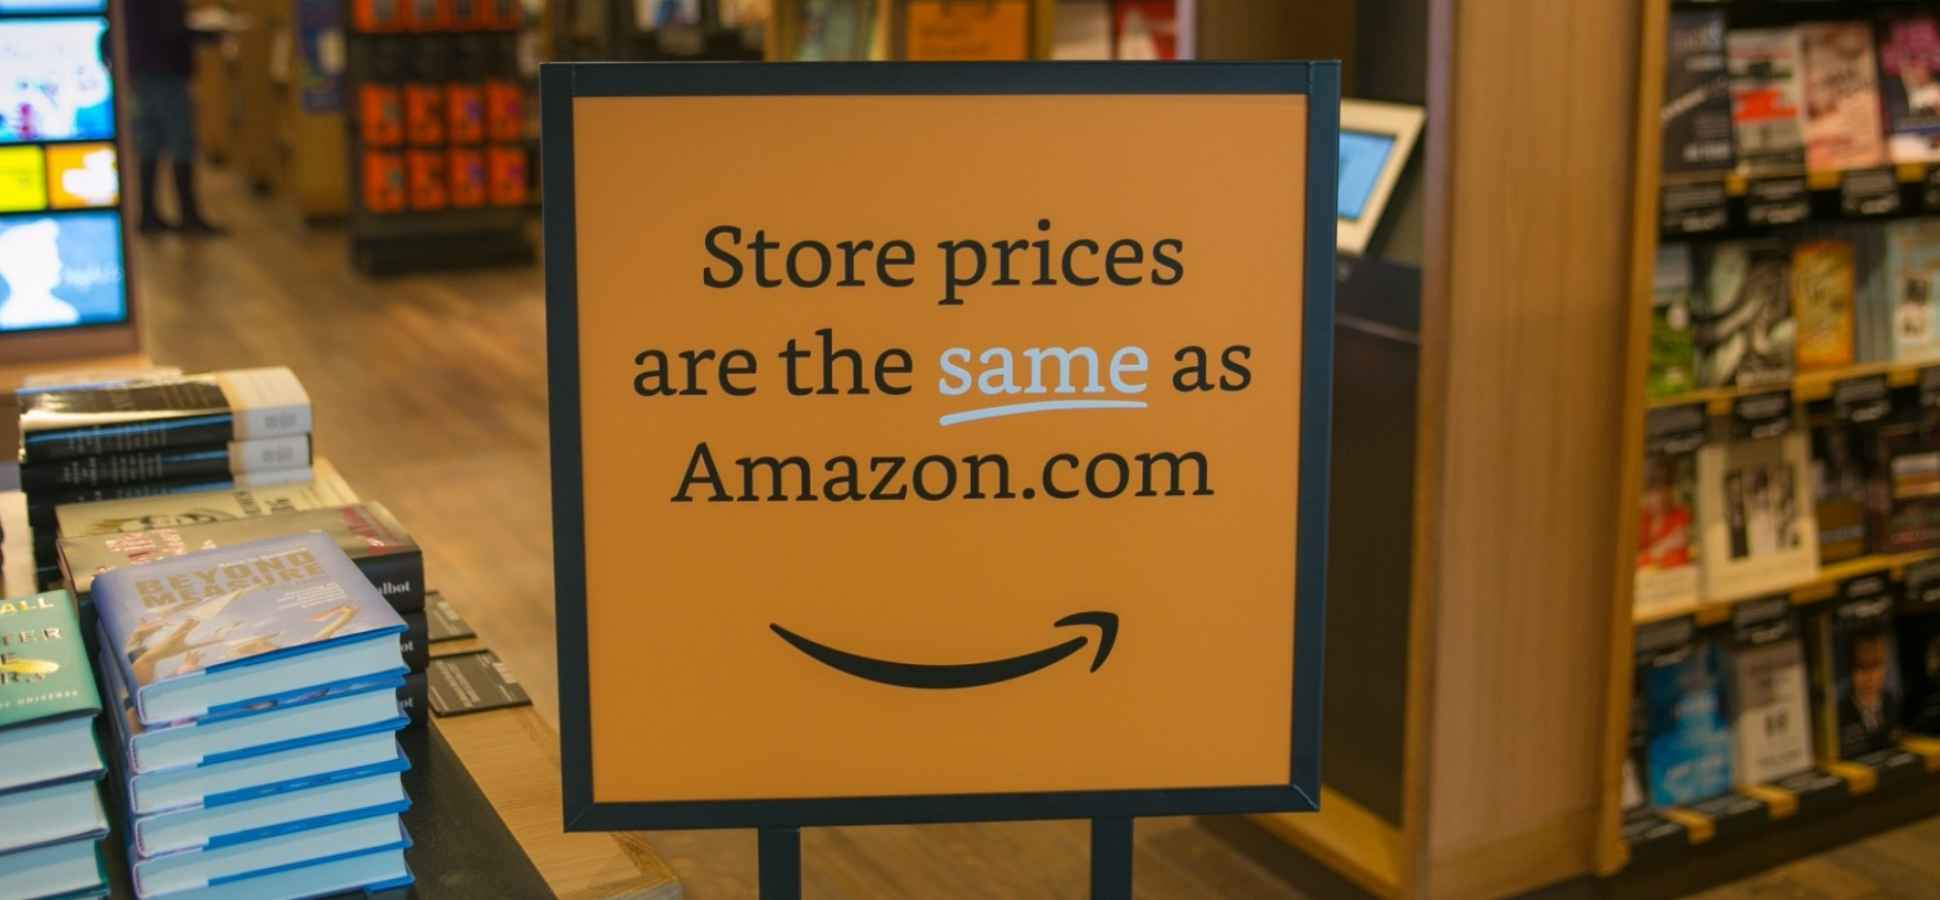 Amazon Just Landed a Patent That Could Throttle Online Retailers